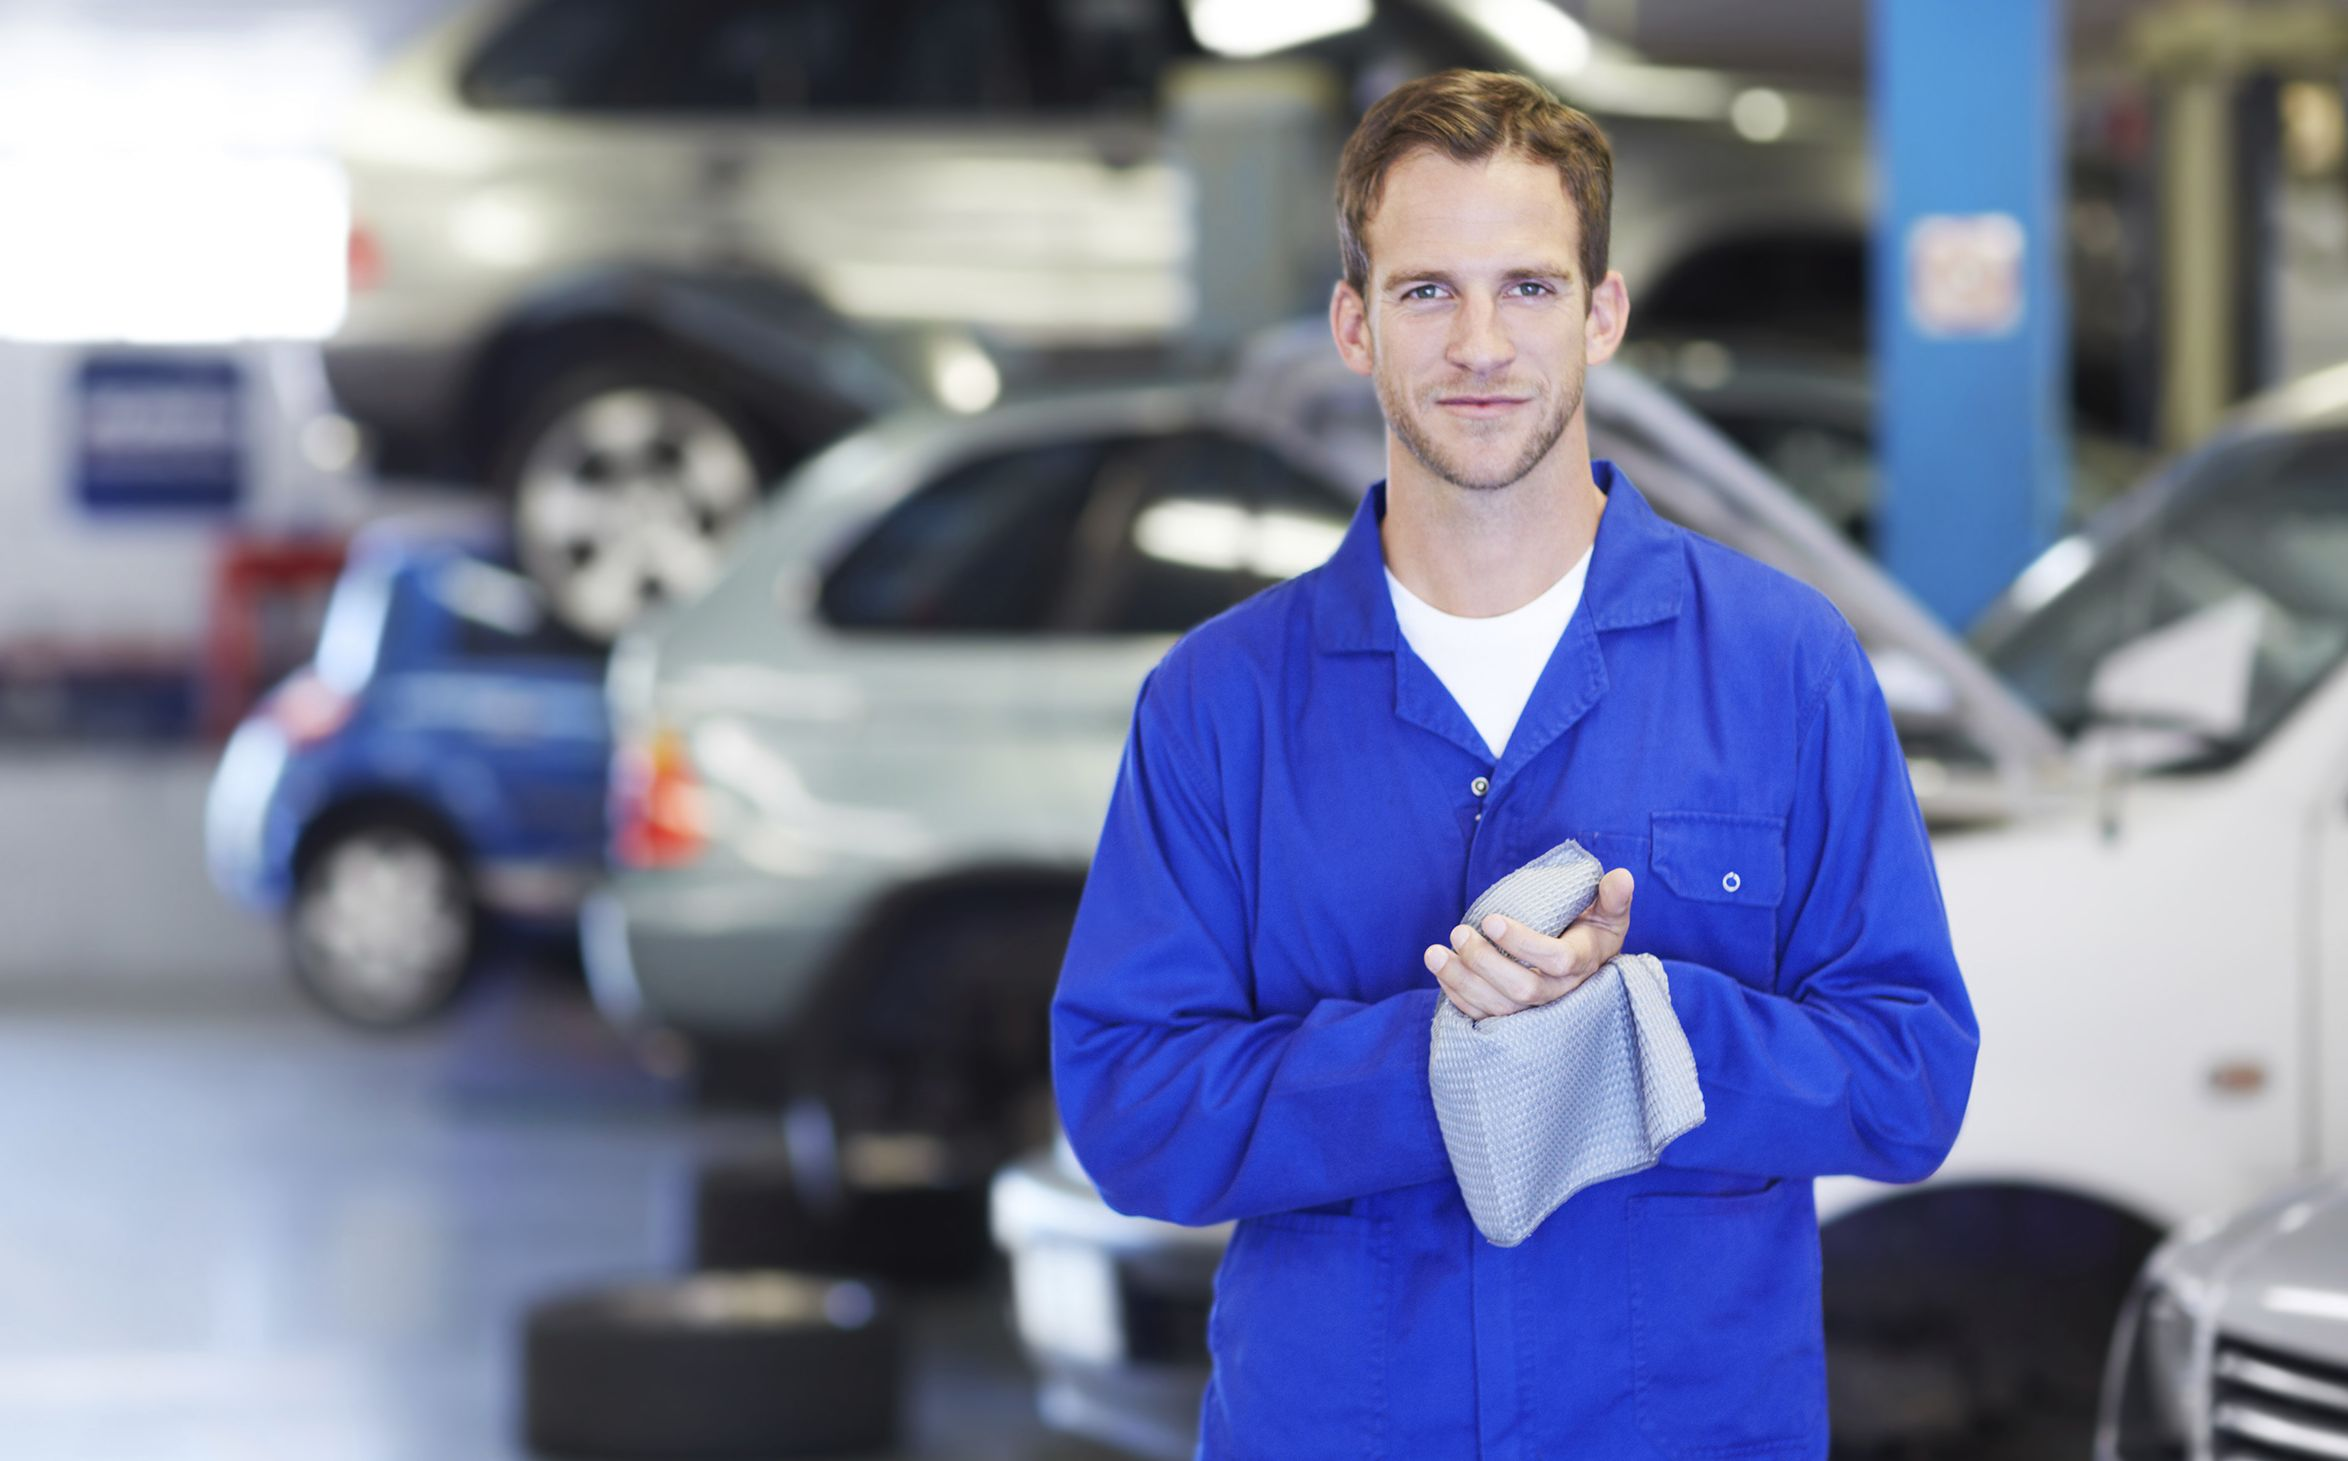 Our Service Department is Ready to Take Care of Your Car!